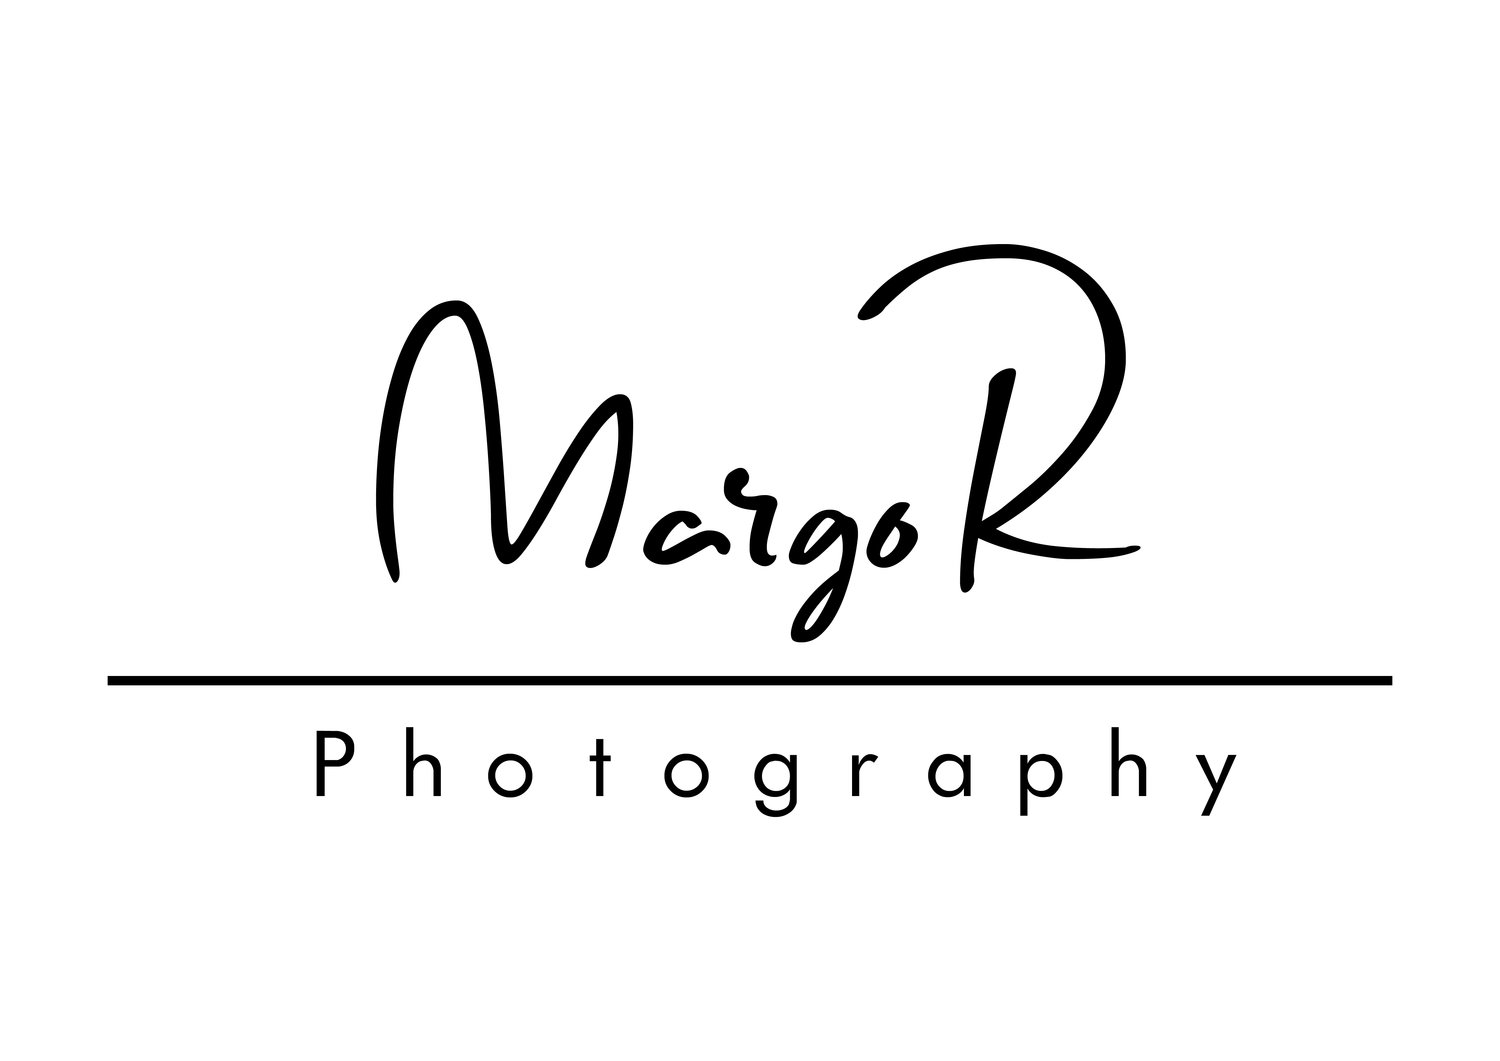 MargoRphotography